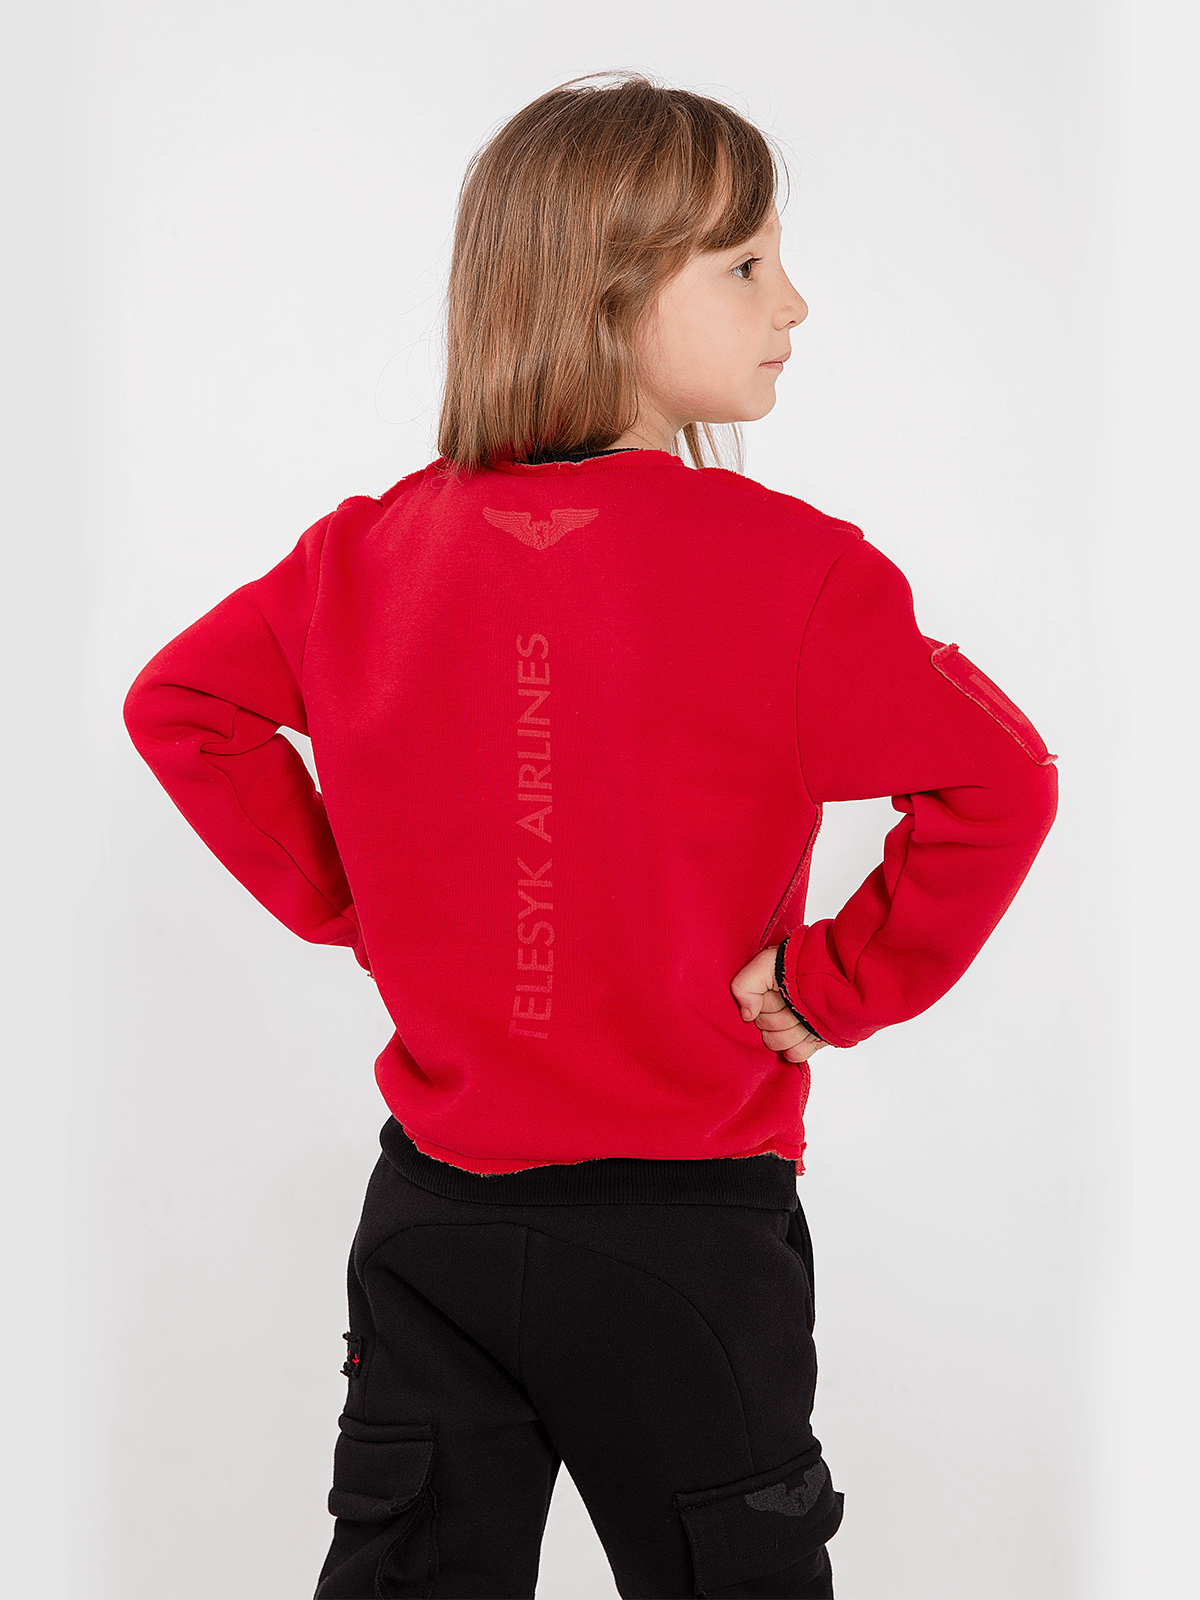 Kids Sweatshirt Forward. Color red.  Material: 77% cotton, 23% polyester.